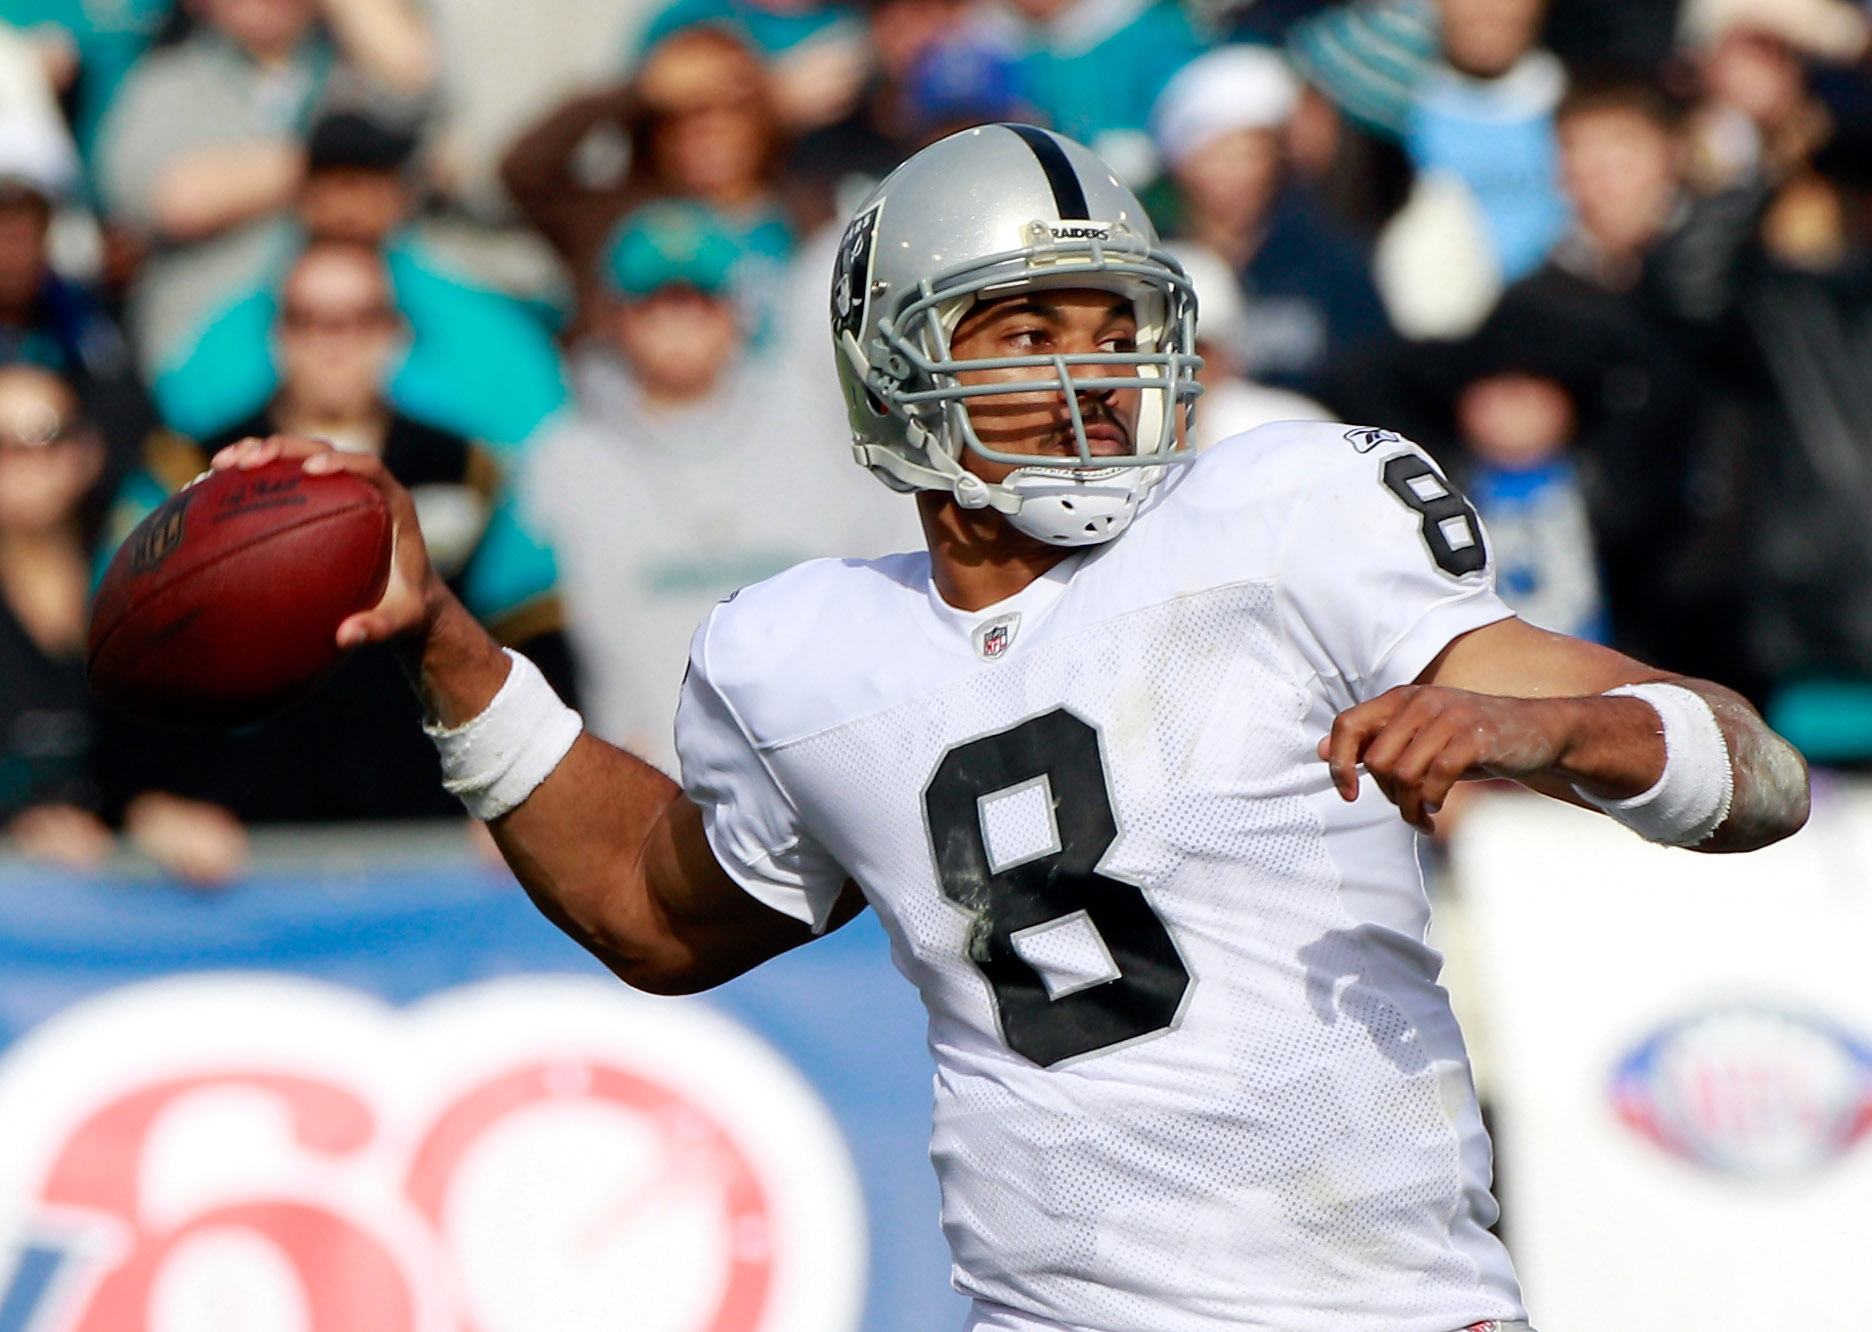 JACKSONVILLE, FL - DECEMBER 12:  Jason Campbell #8 of the Oakland Raiders attempts a pass during the game against the Jacksonville Jaguars at EverBank Field on December 12, 2010 in Jacksonville, Florida.  (Photo by Sam Greenwood/Getty Images)